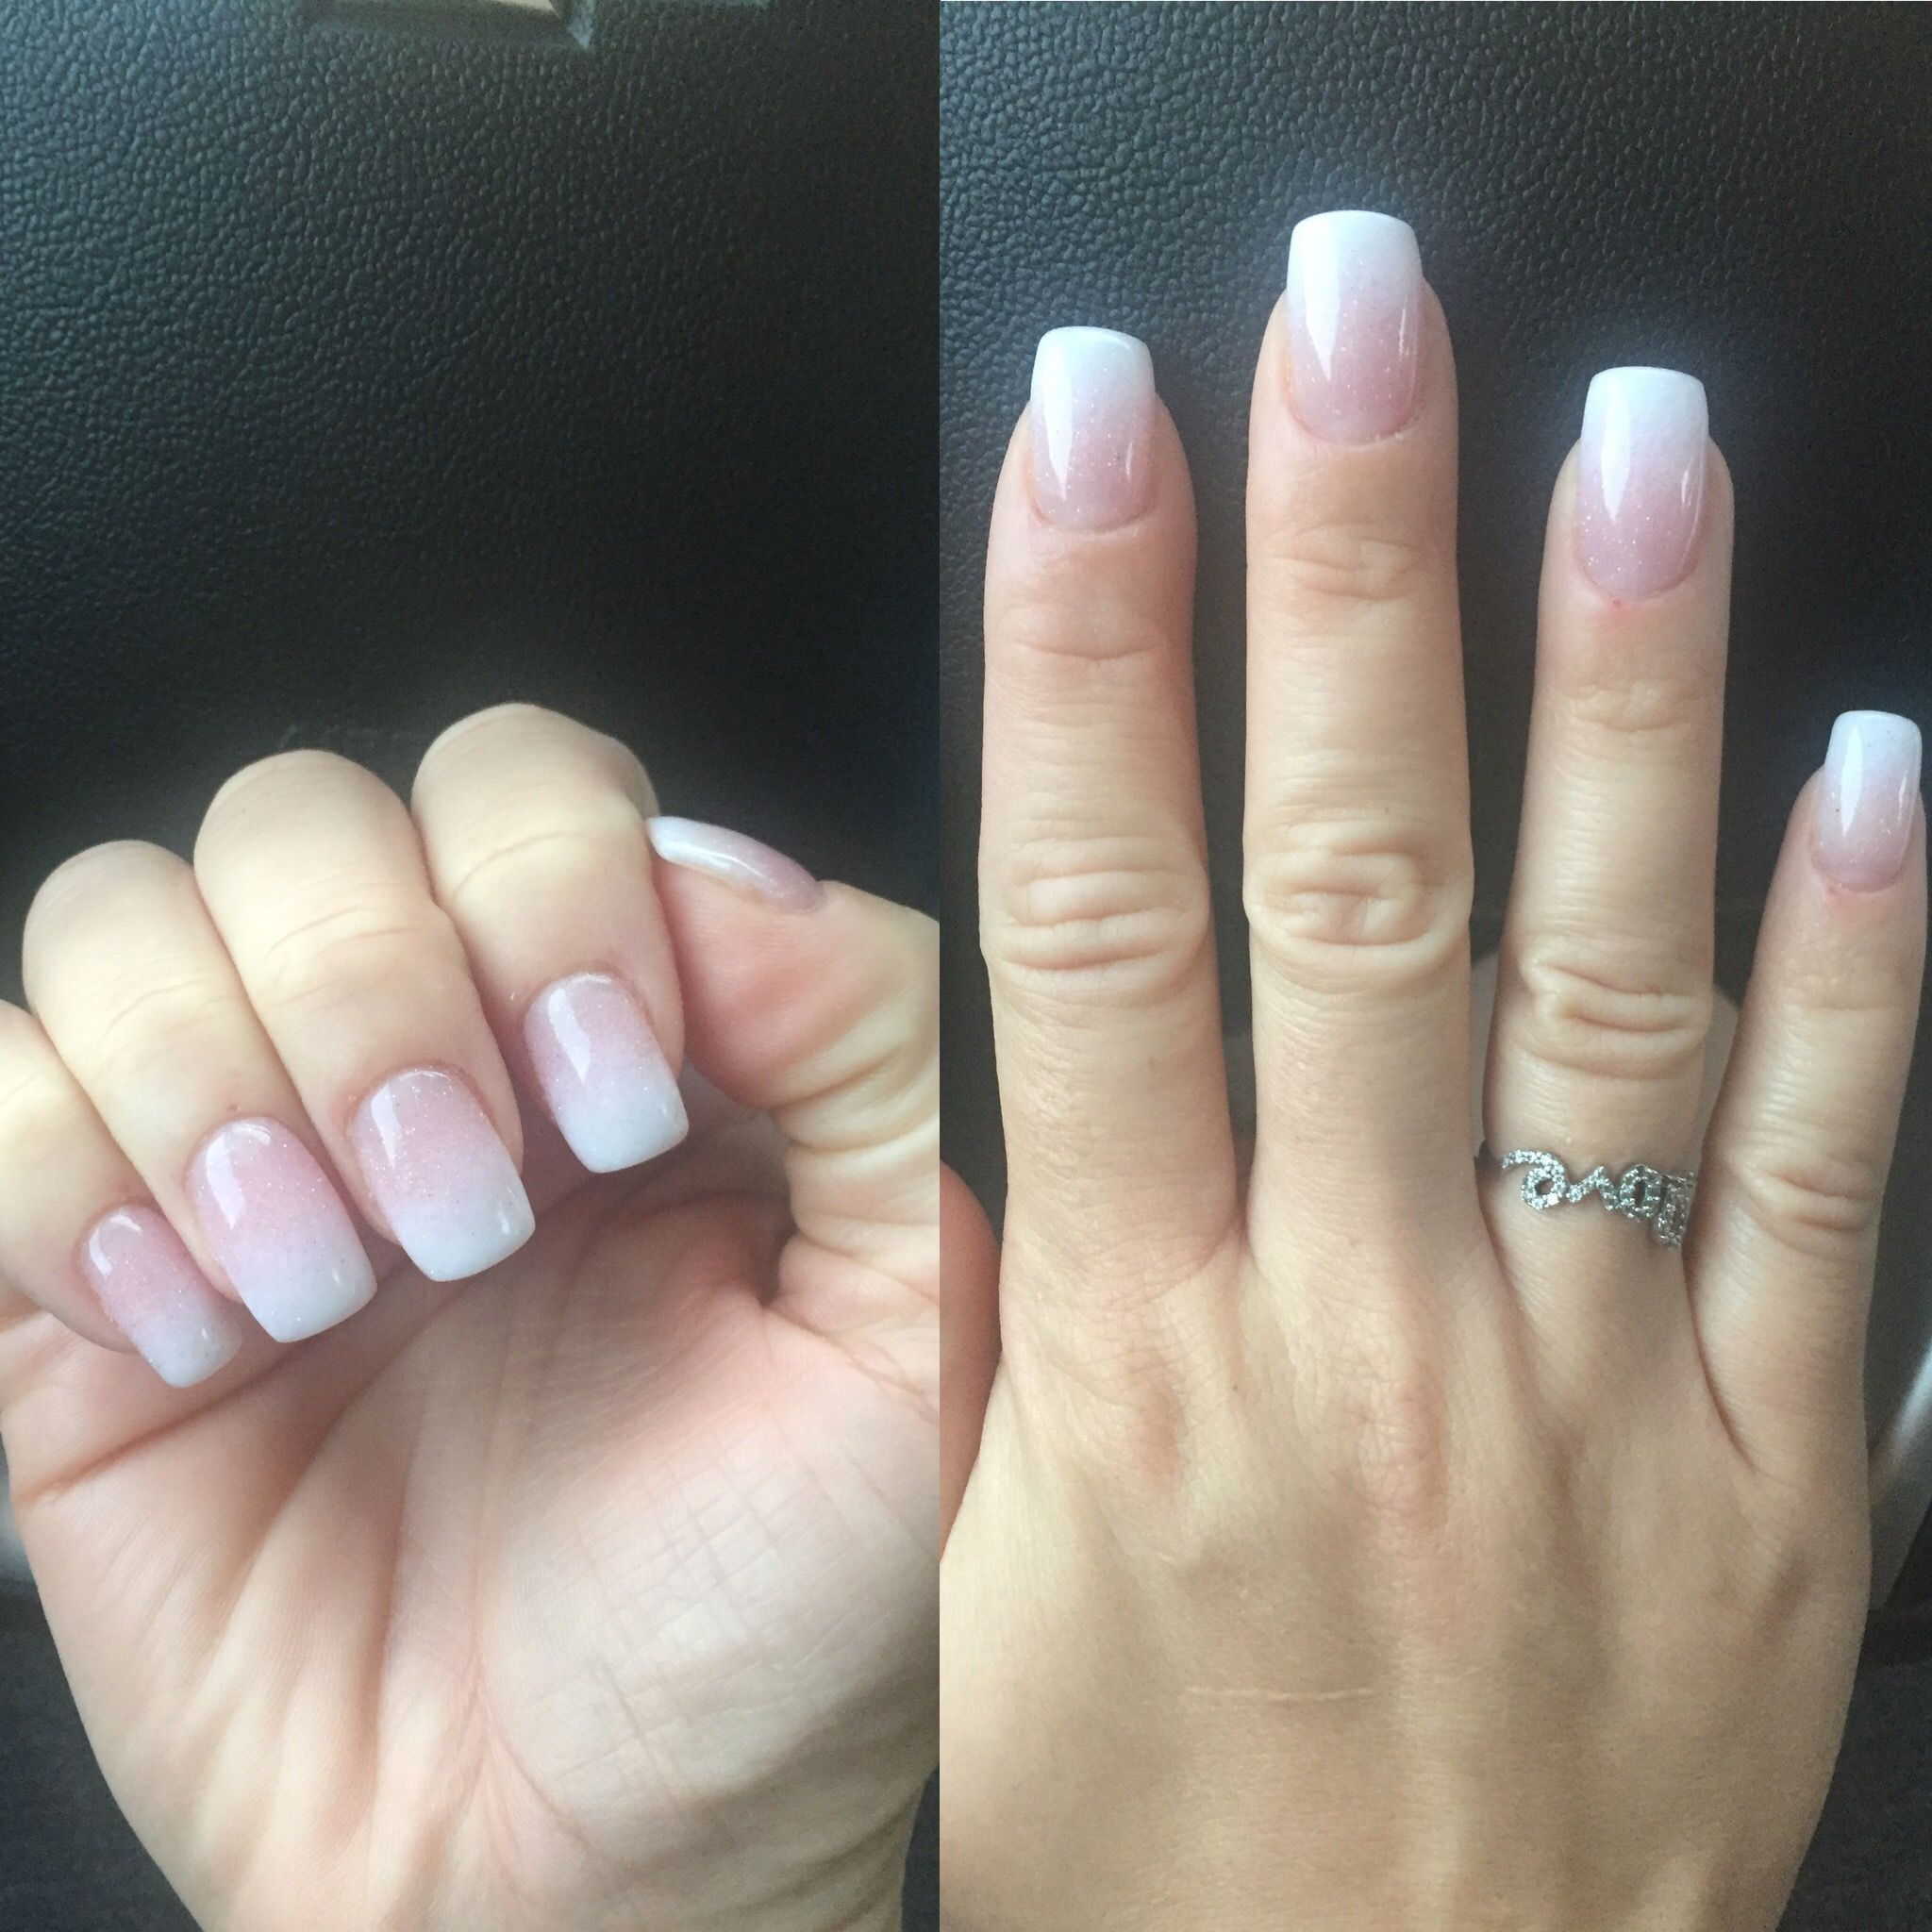 SNS Ombr pink to white   My SNS Nails   Pinterest   Nails ...